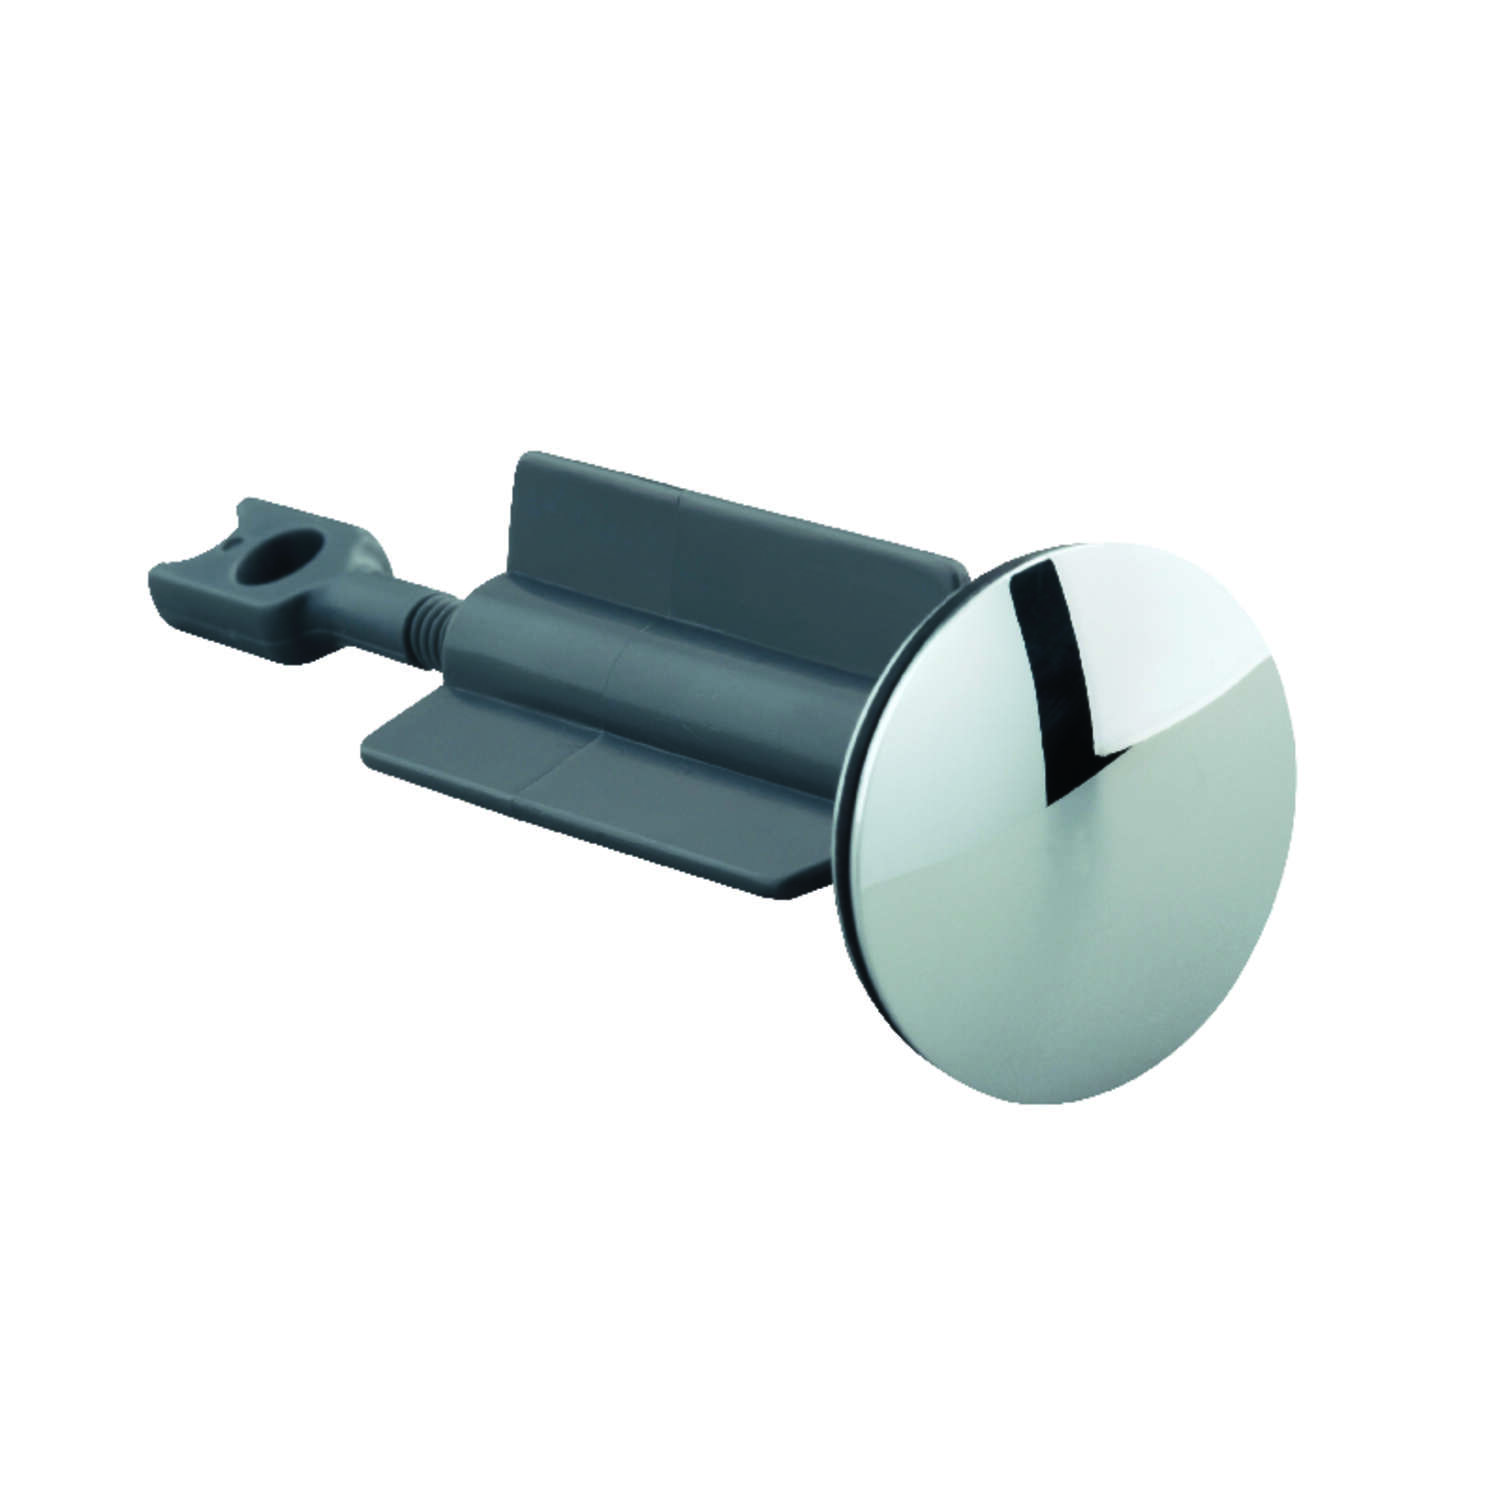 Kohler 1.55 in. Polished Chrome Plastic Pop-Up Stopper